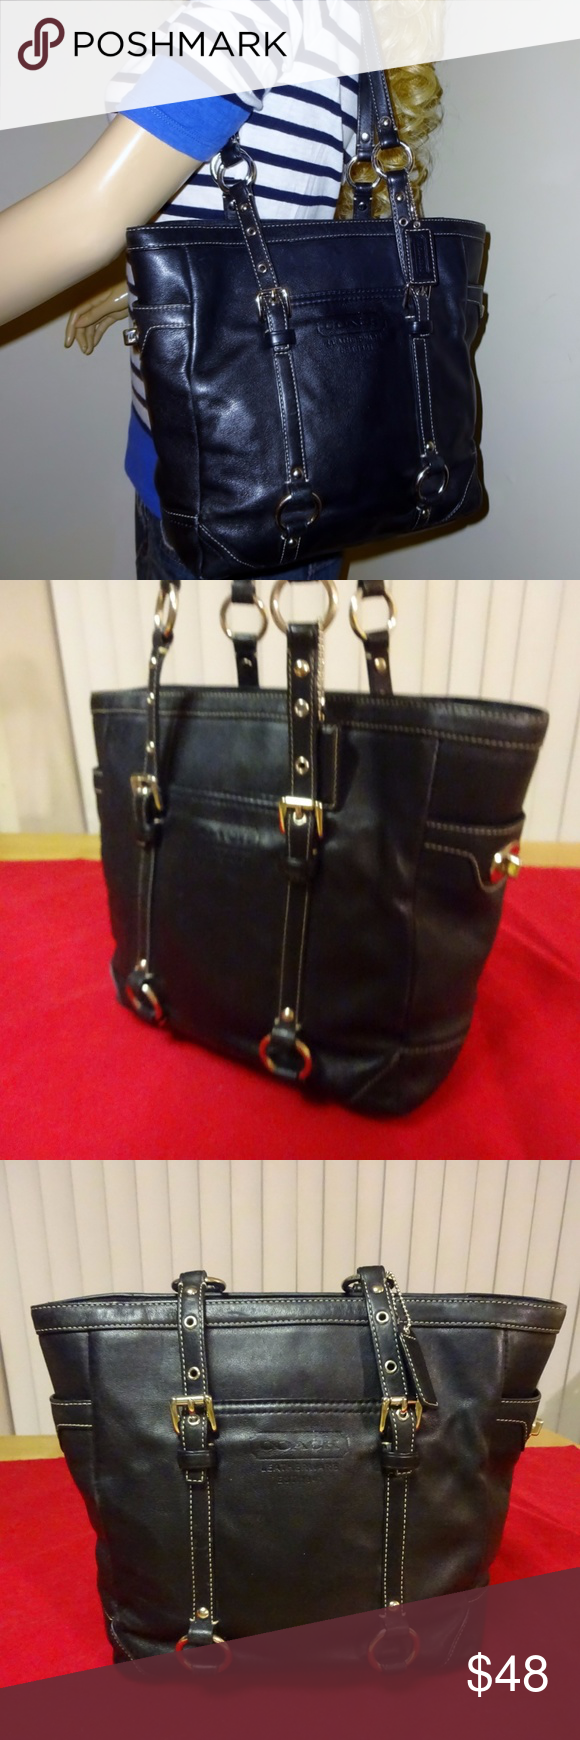 SOLD!! Legacy Black Leather Lunch Tote F11524 Black